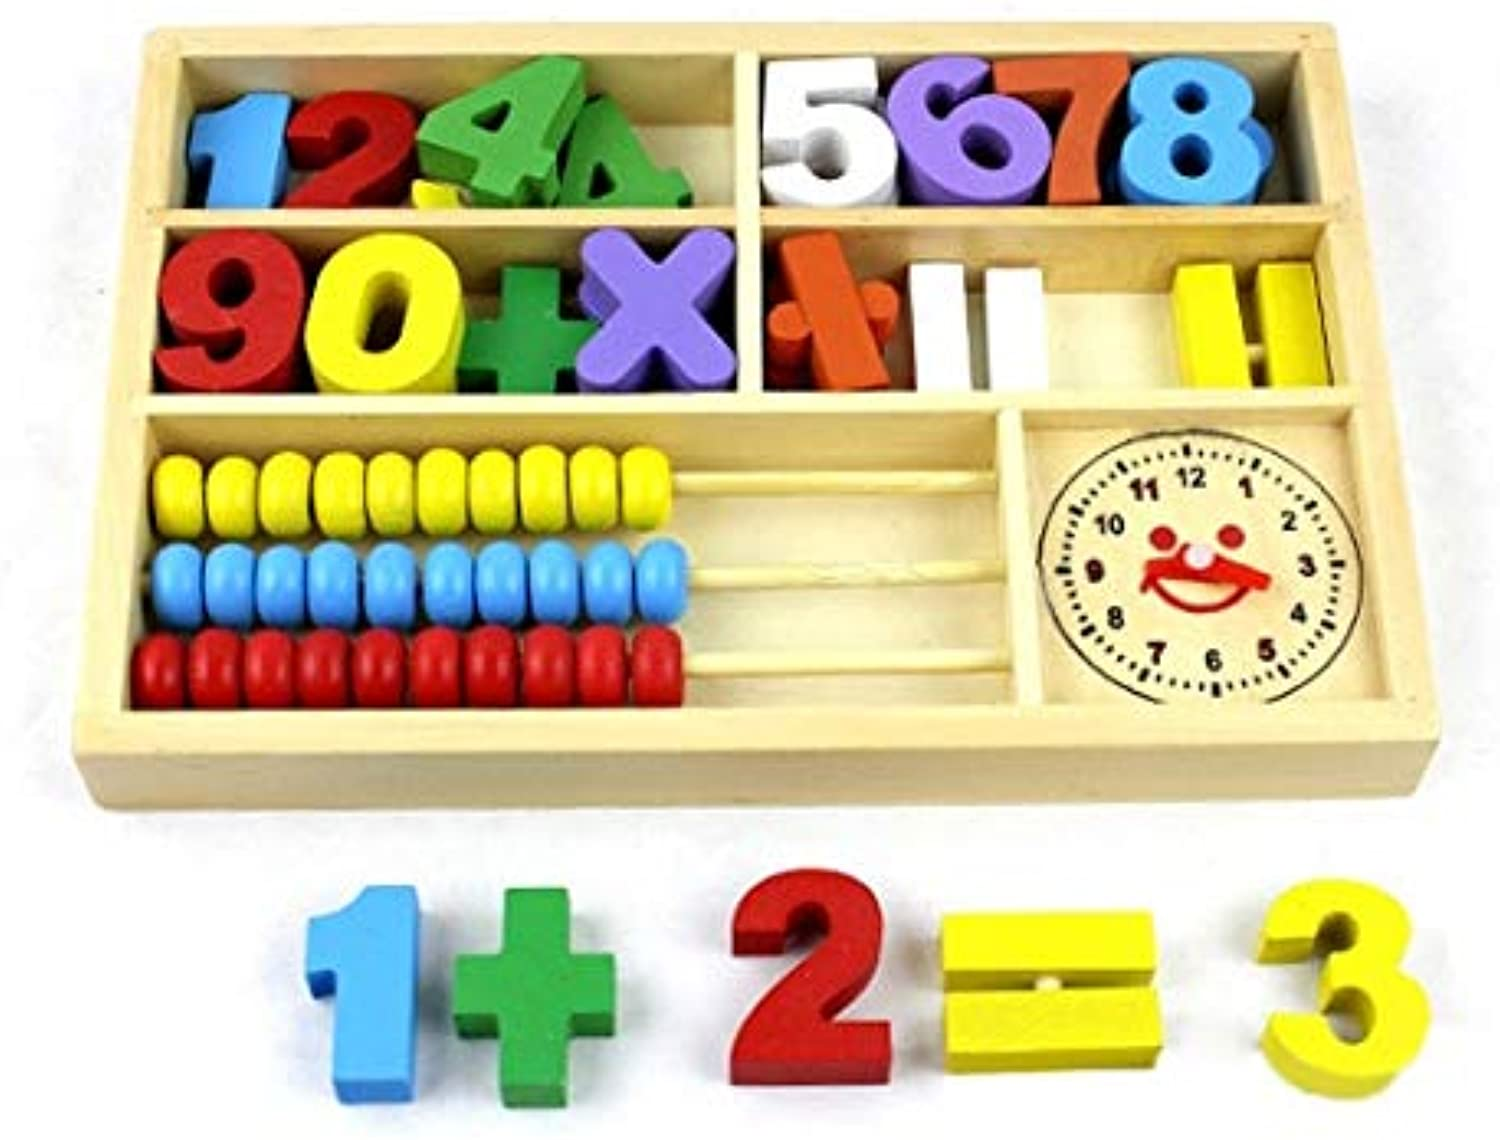 Laliva BOHS Mathematic Abacus Math Counting Calculating Learning Box Clock Multifunctional Wooden Educational Toys